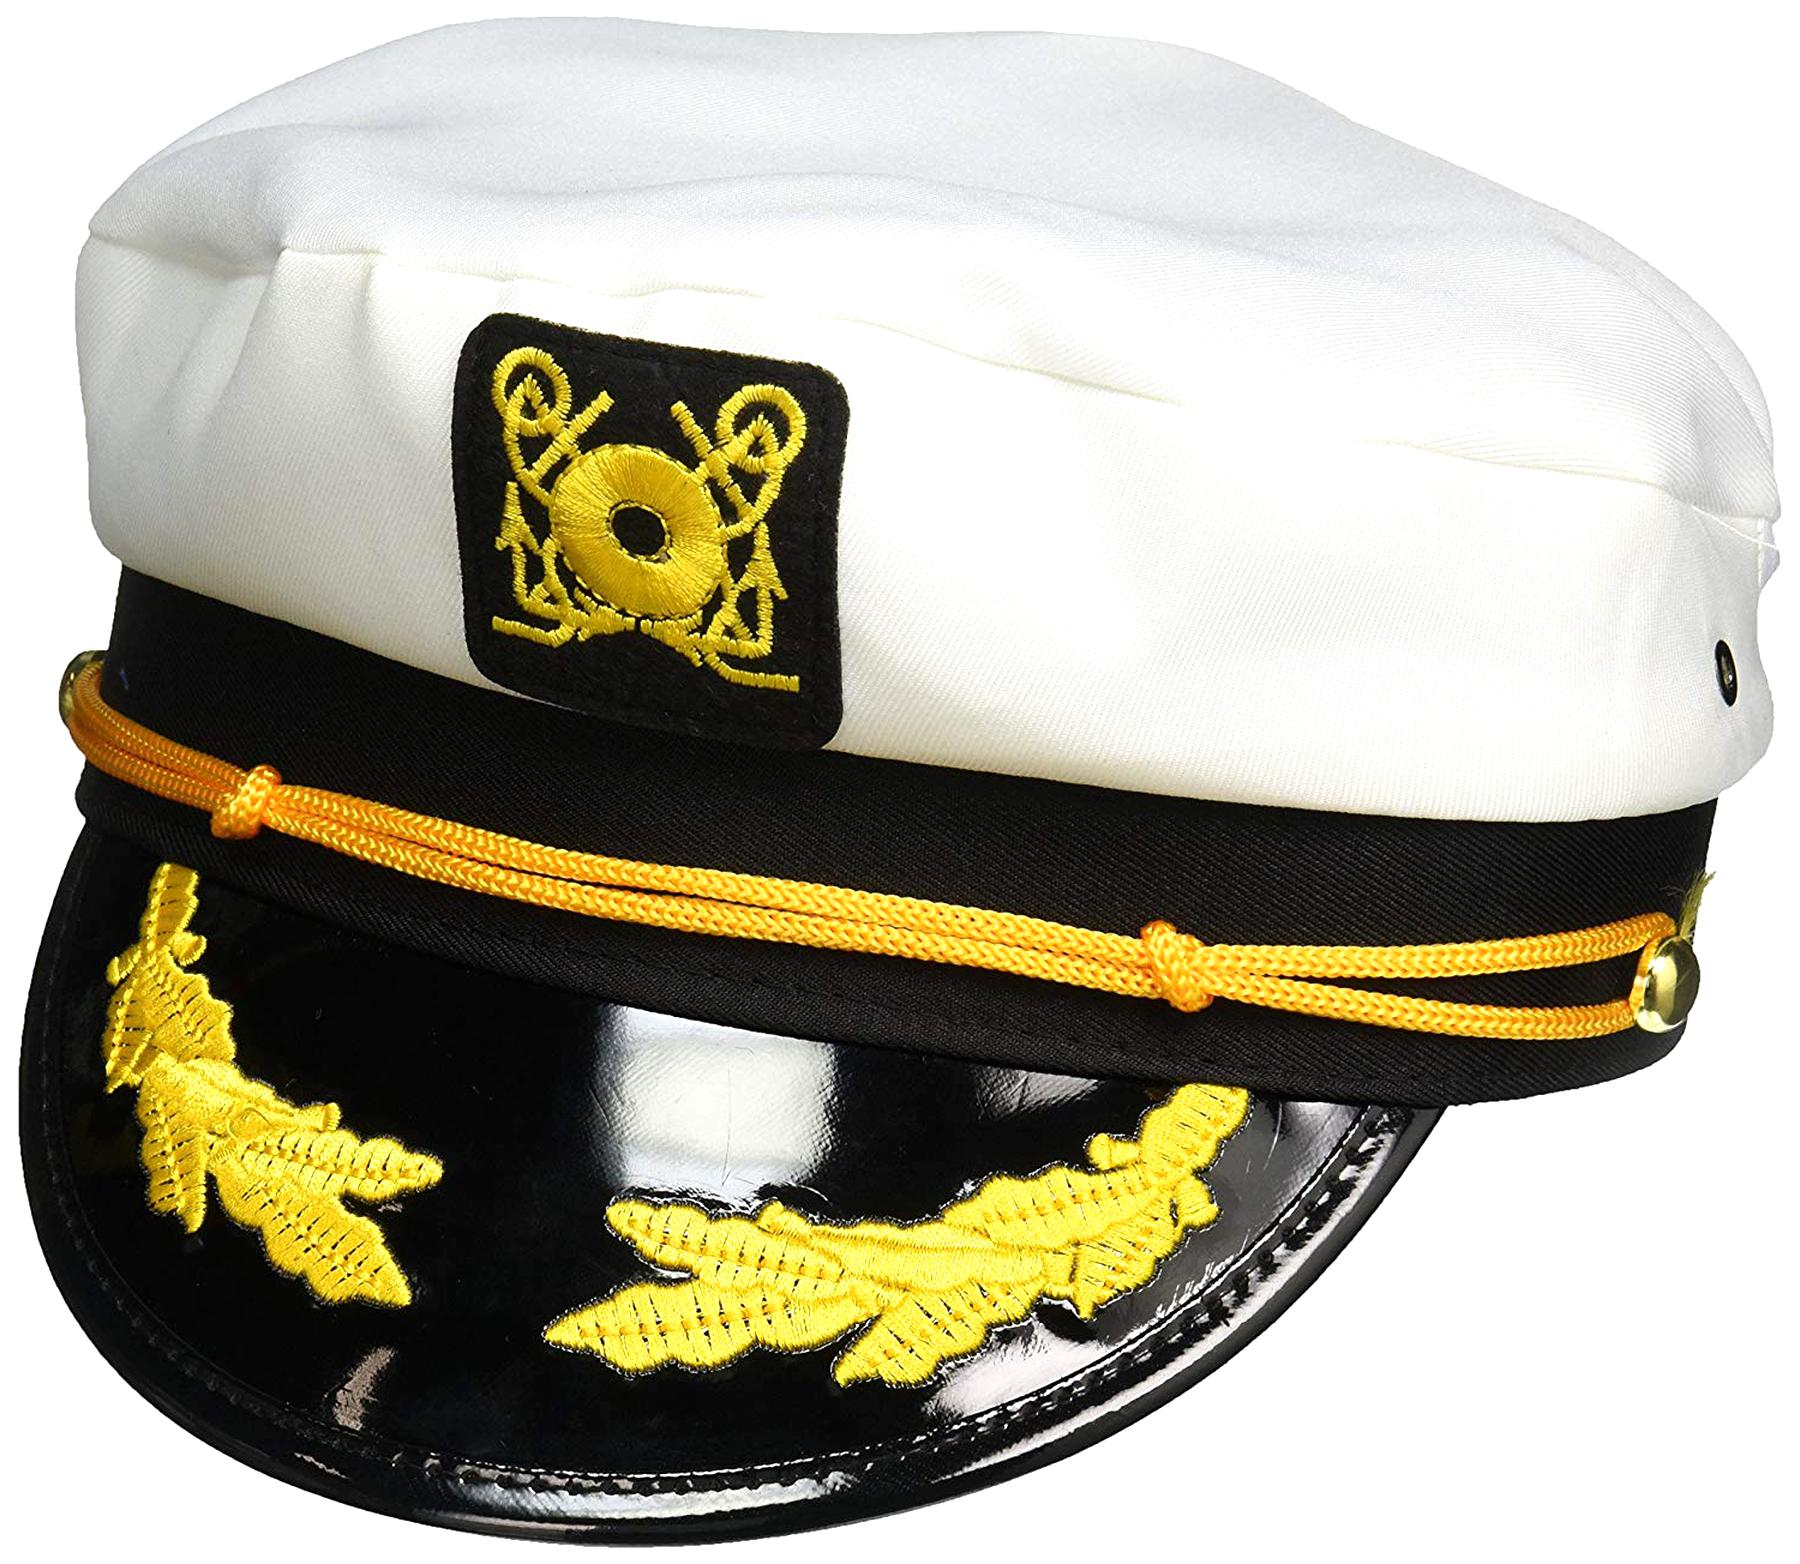 yacht hat for sale